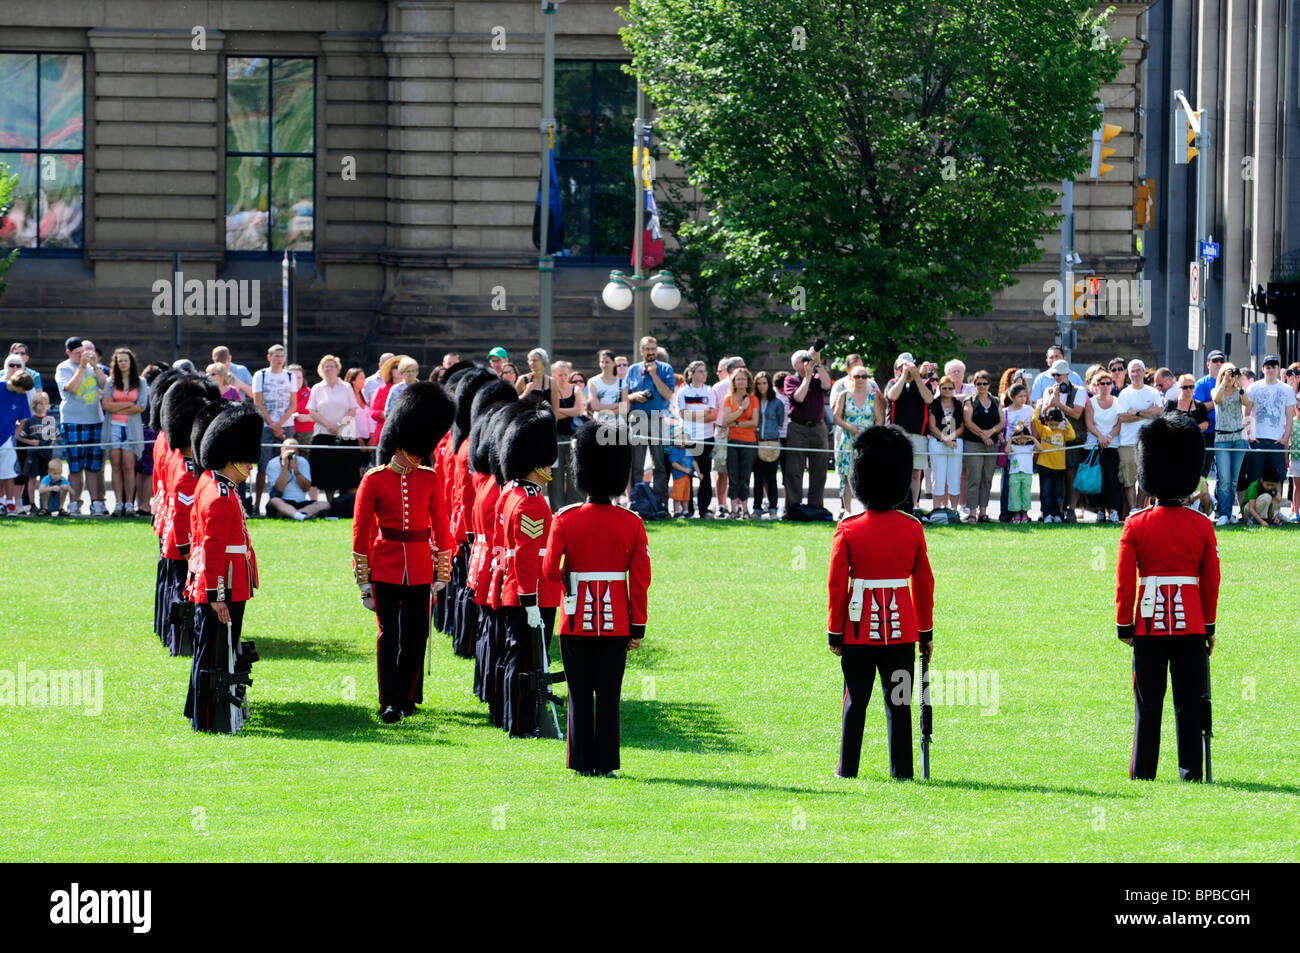 The governor general s foot guards - The Colour Guard Of The Governor General S Foot Guards Being Inspected On Parliament Hill Ottawa